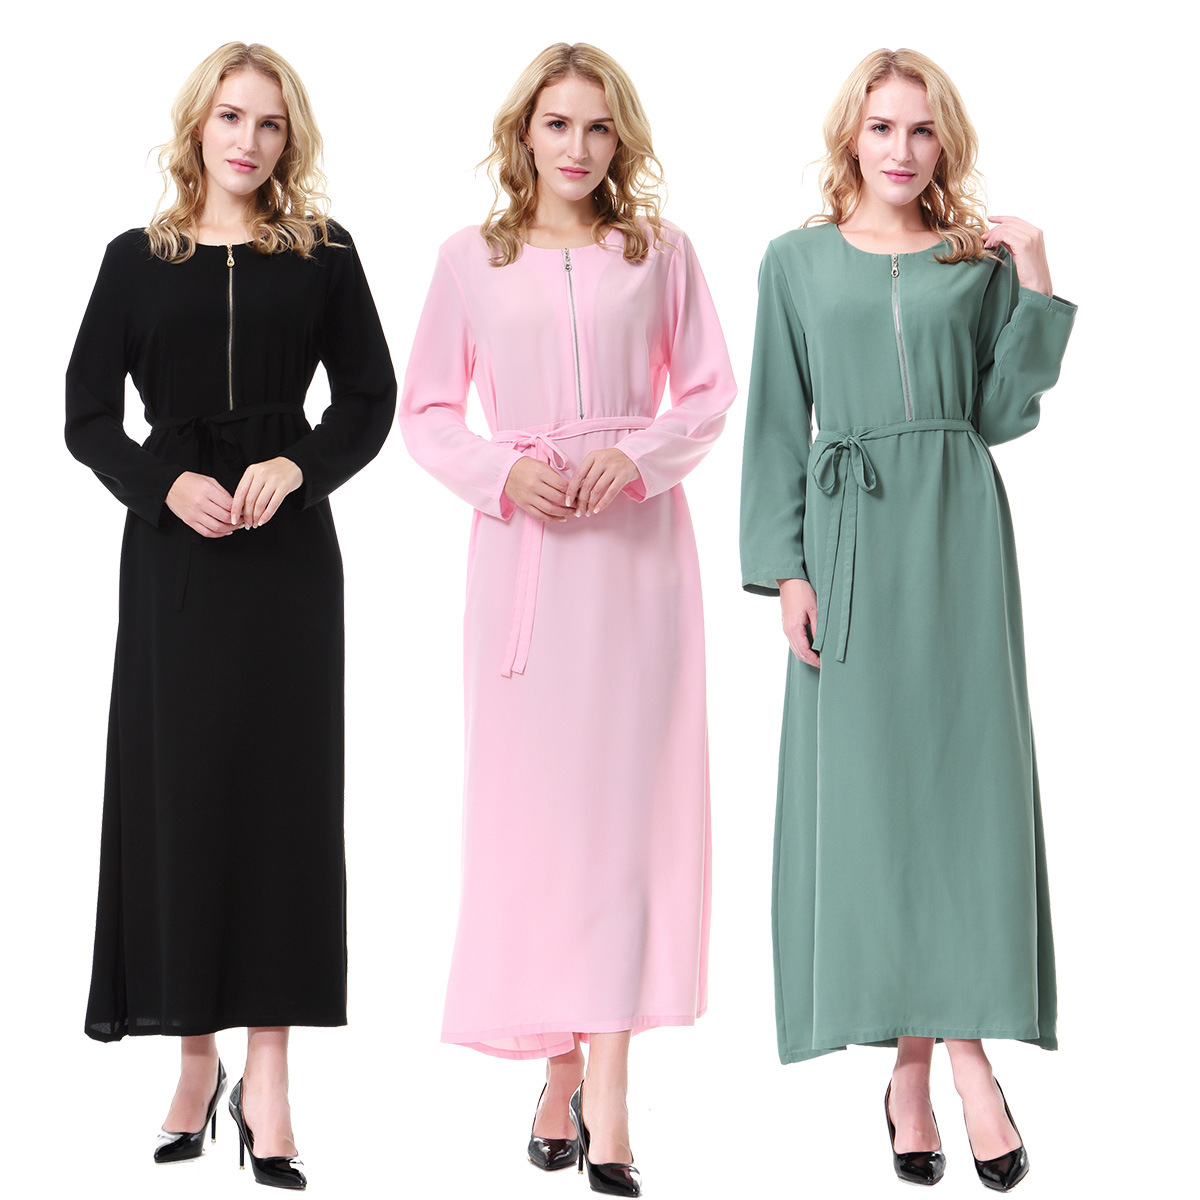 Summer Solid Color Abaya Muslim Long Full Sleeve Abaya Dress Islamic Muslim Clothing Women Adults Islamic Dress